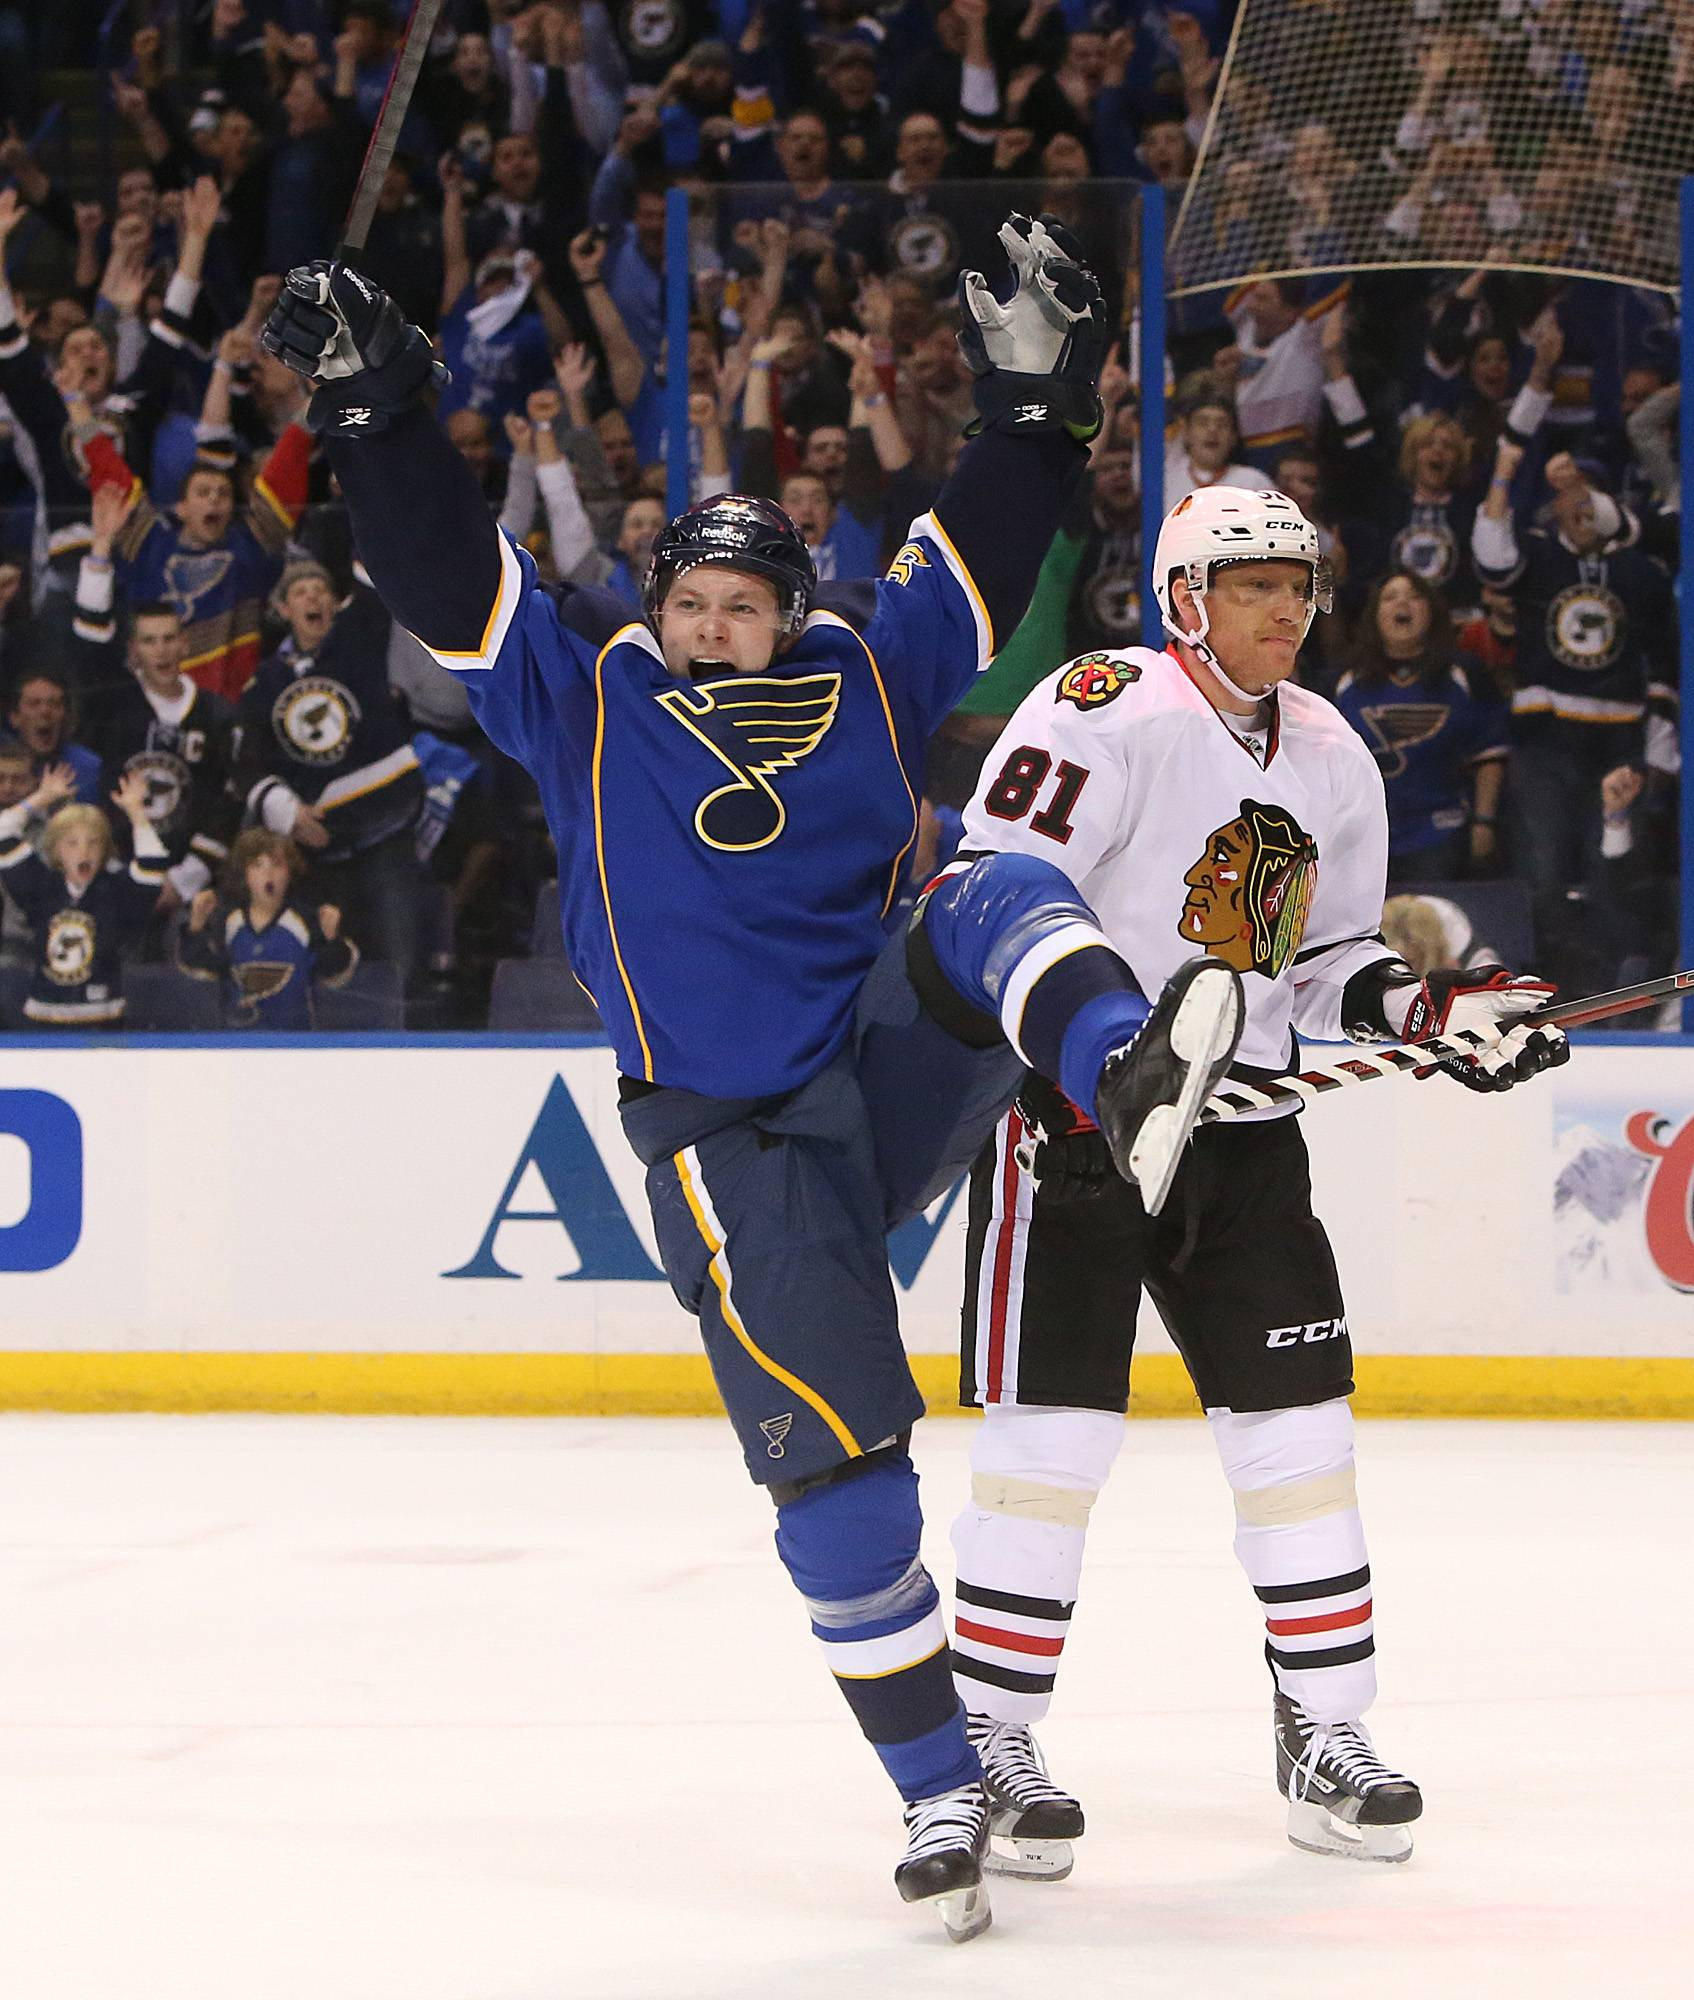 St. Louis Blues right wing Vladimir Tarasenko, left, reacts after scoring a goal against the Chicago Blackhawks during the first period.